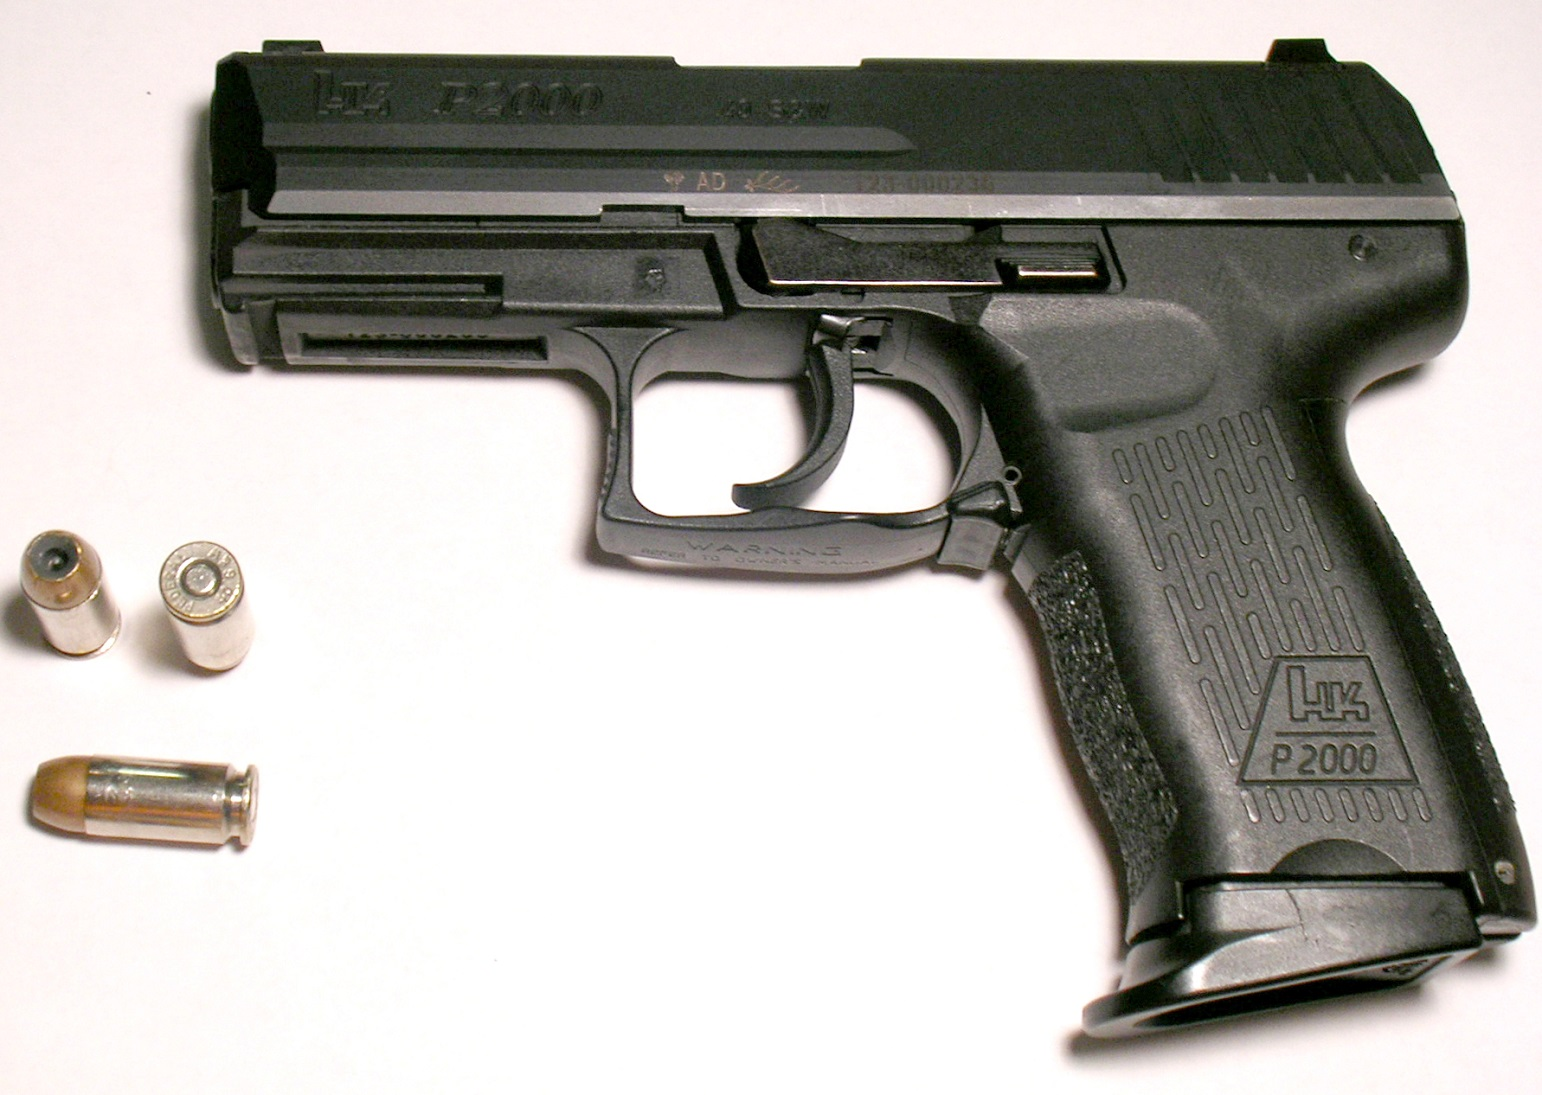 The P2000: Could This Be the BMW or Mercedes of Guns?